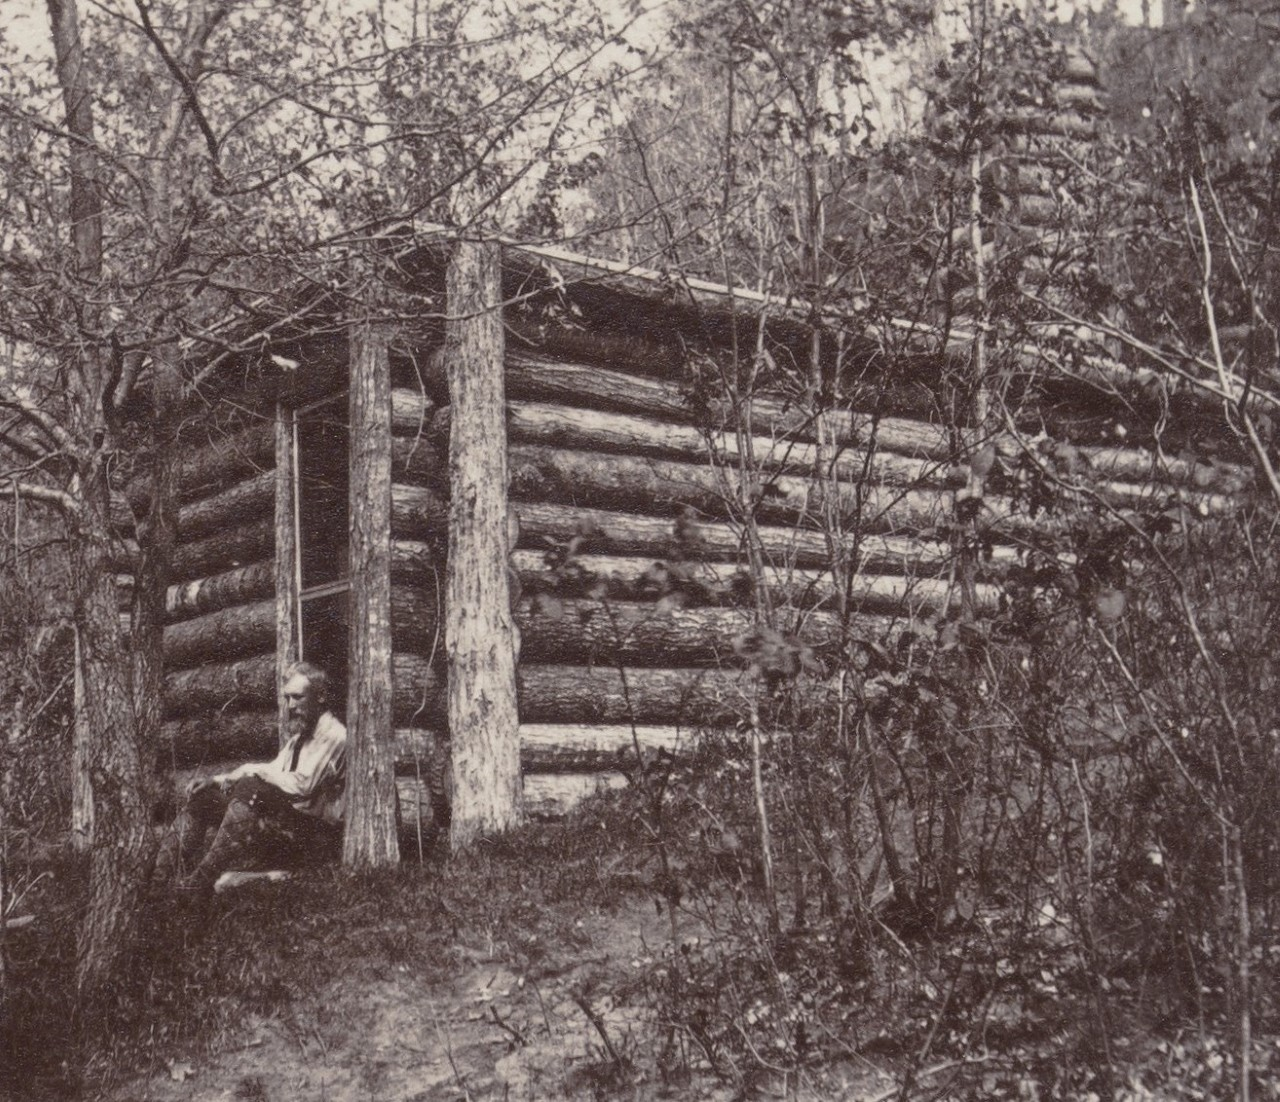 Black and white photo of a man sitting on the doorstep of a log cabin in the woods.